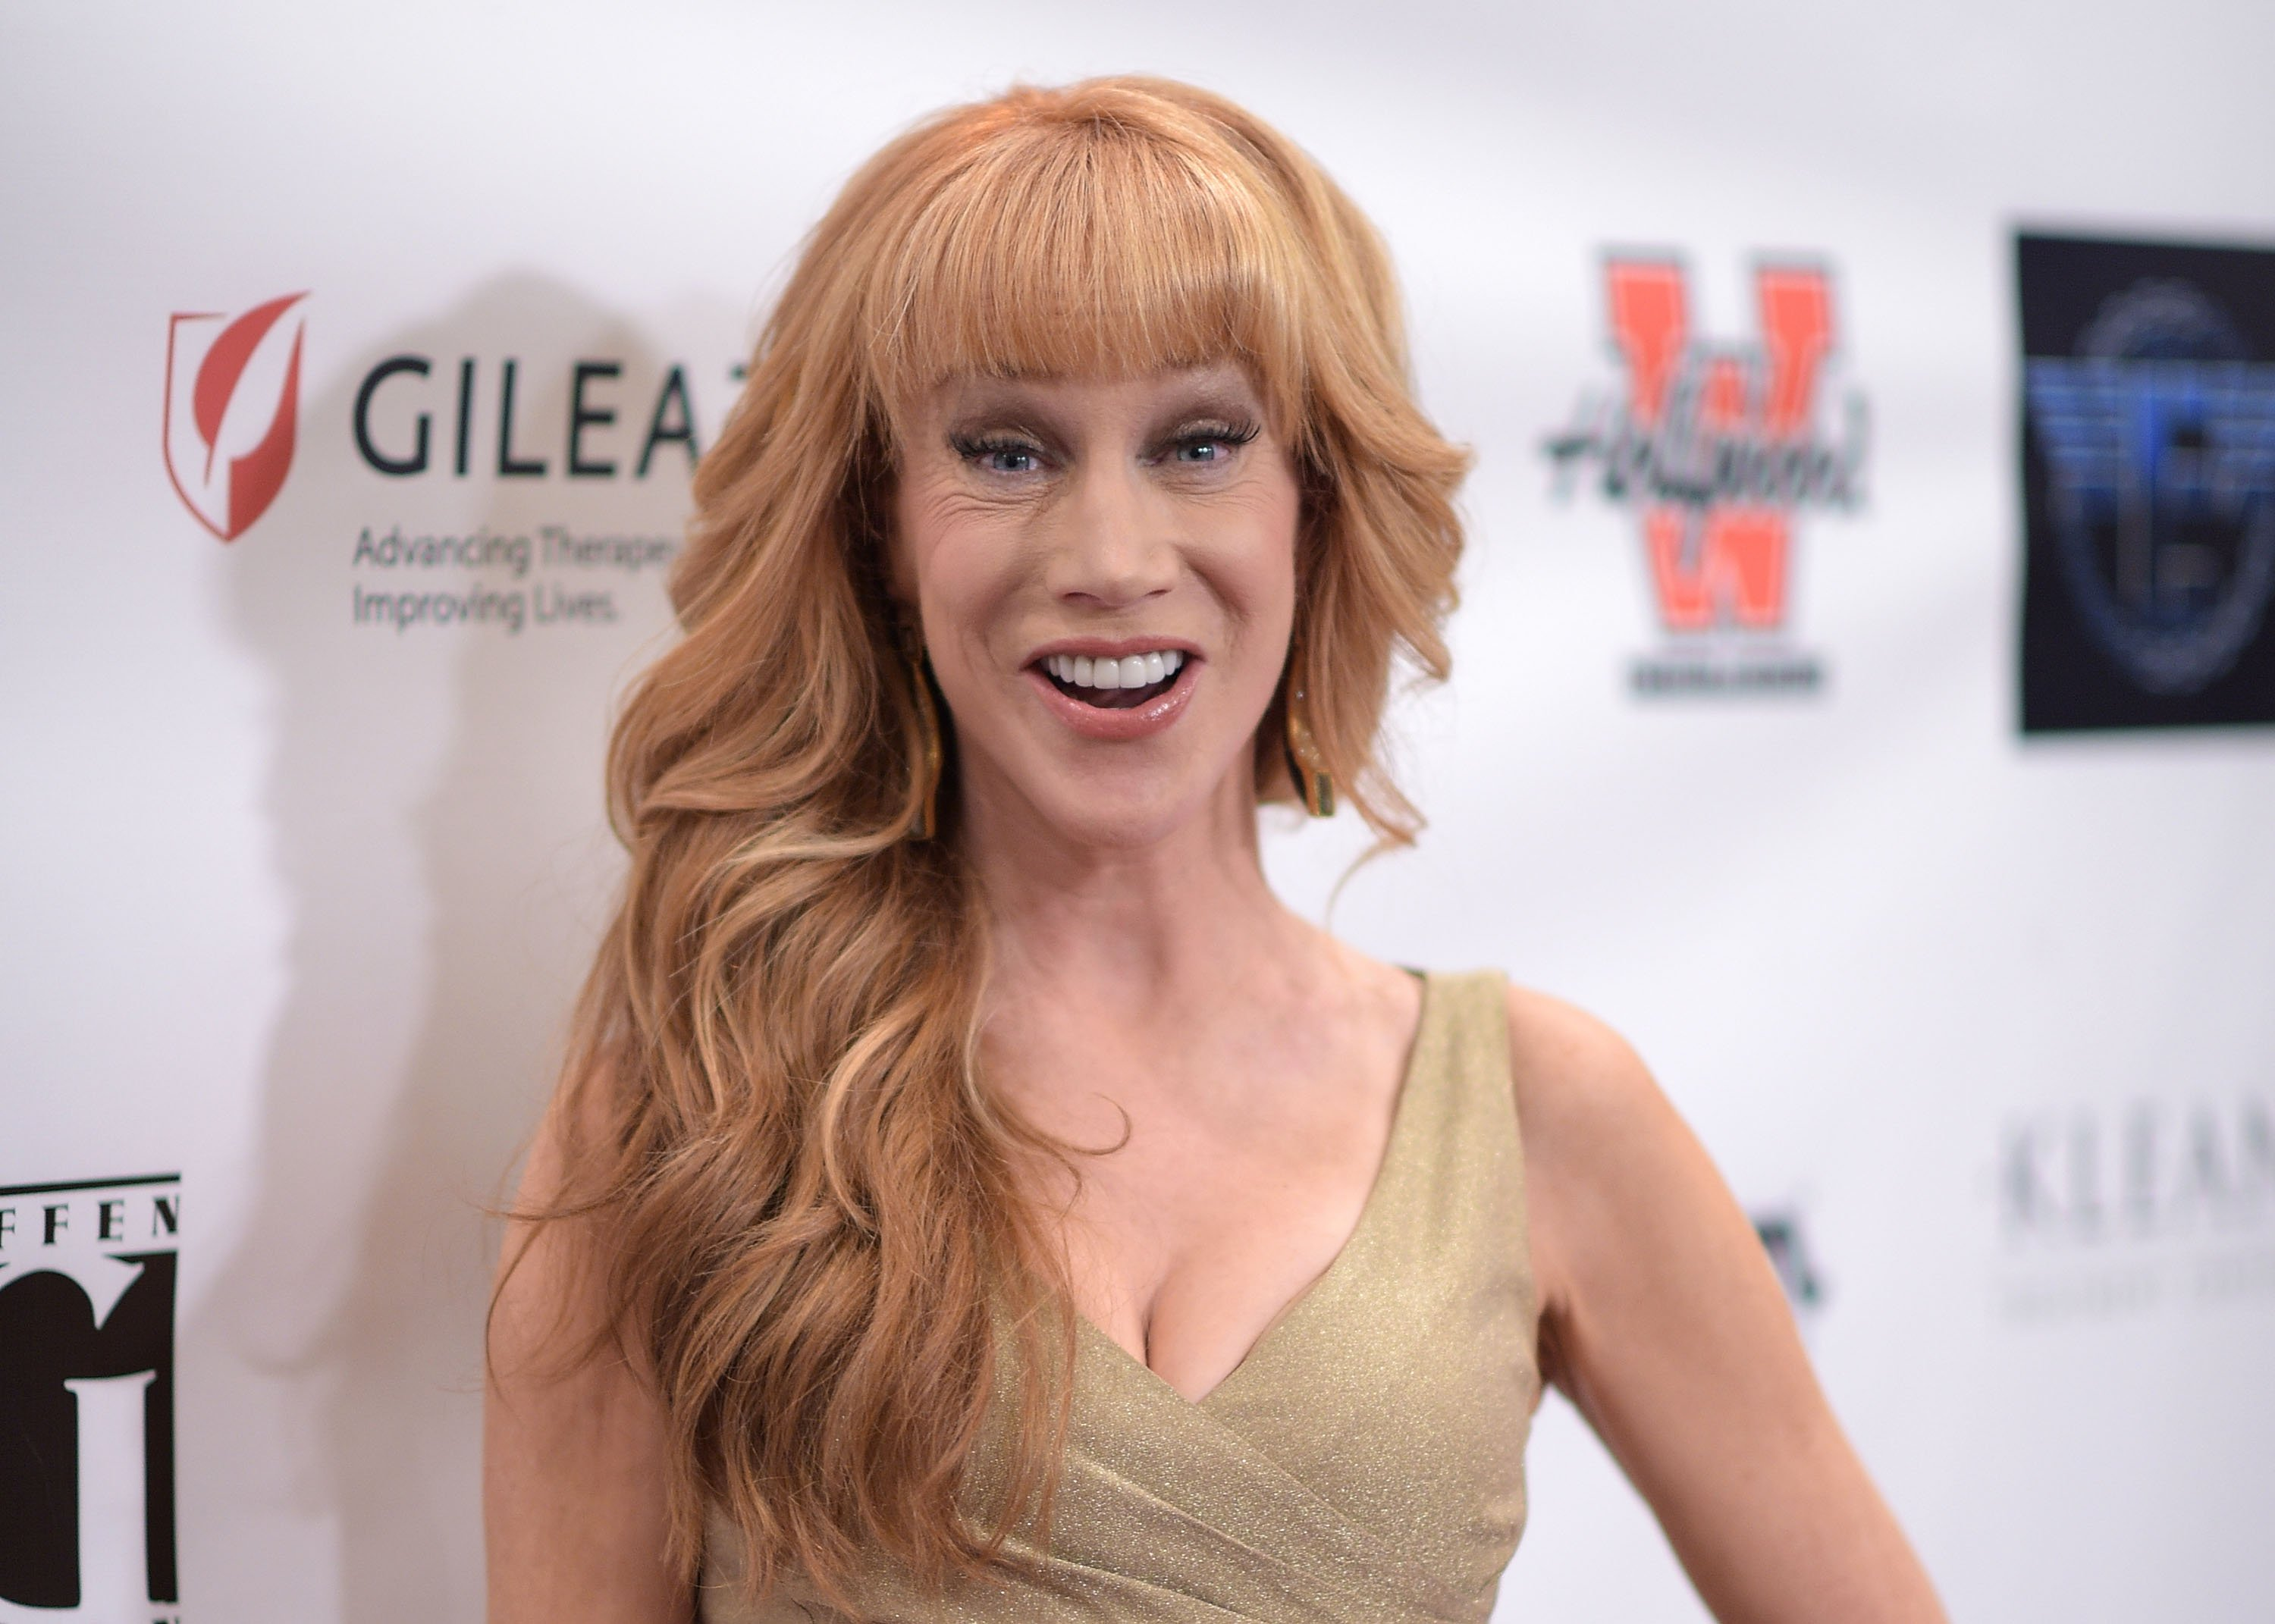 Kathy Griffin to appear as Kellyanne Conway in Comedy Central series